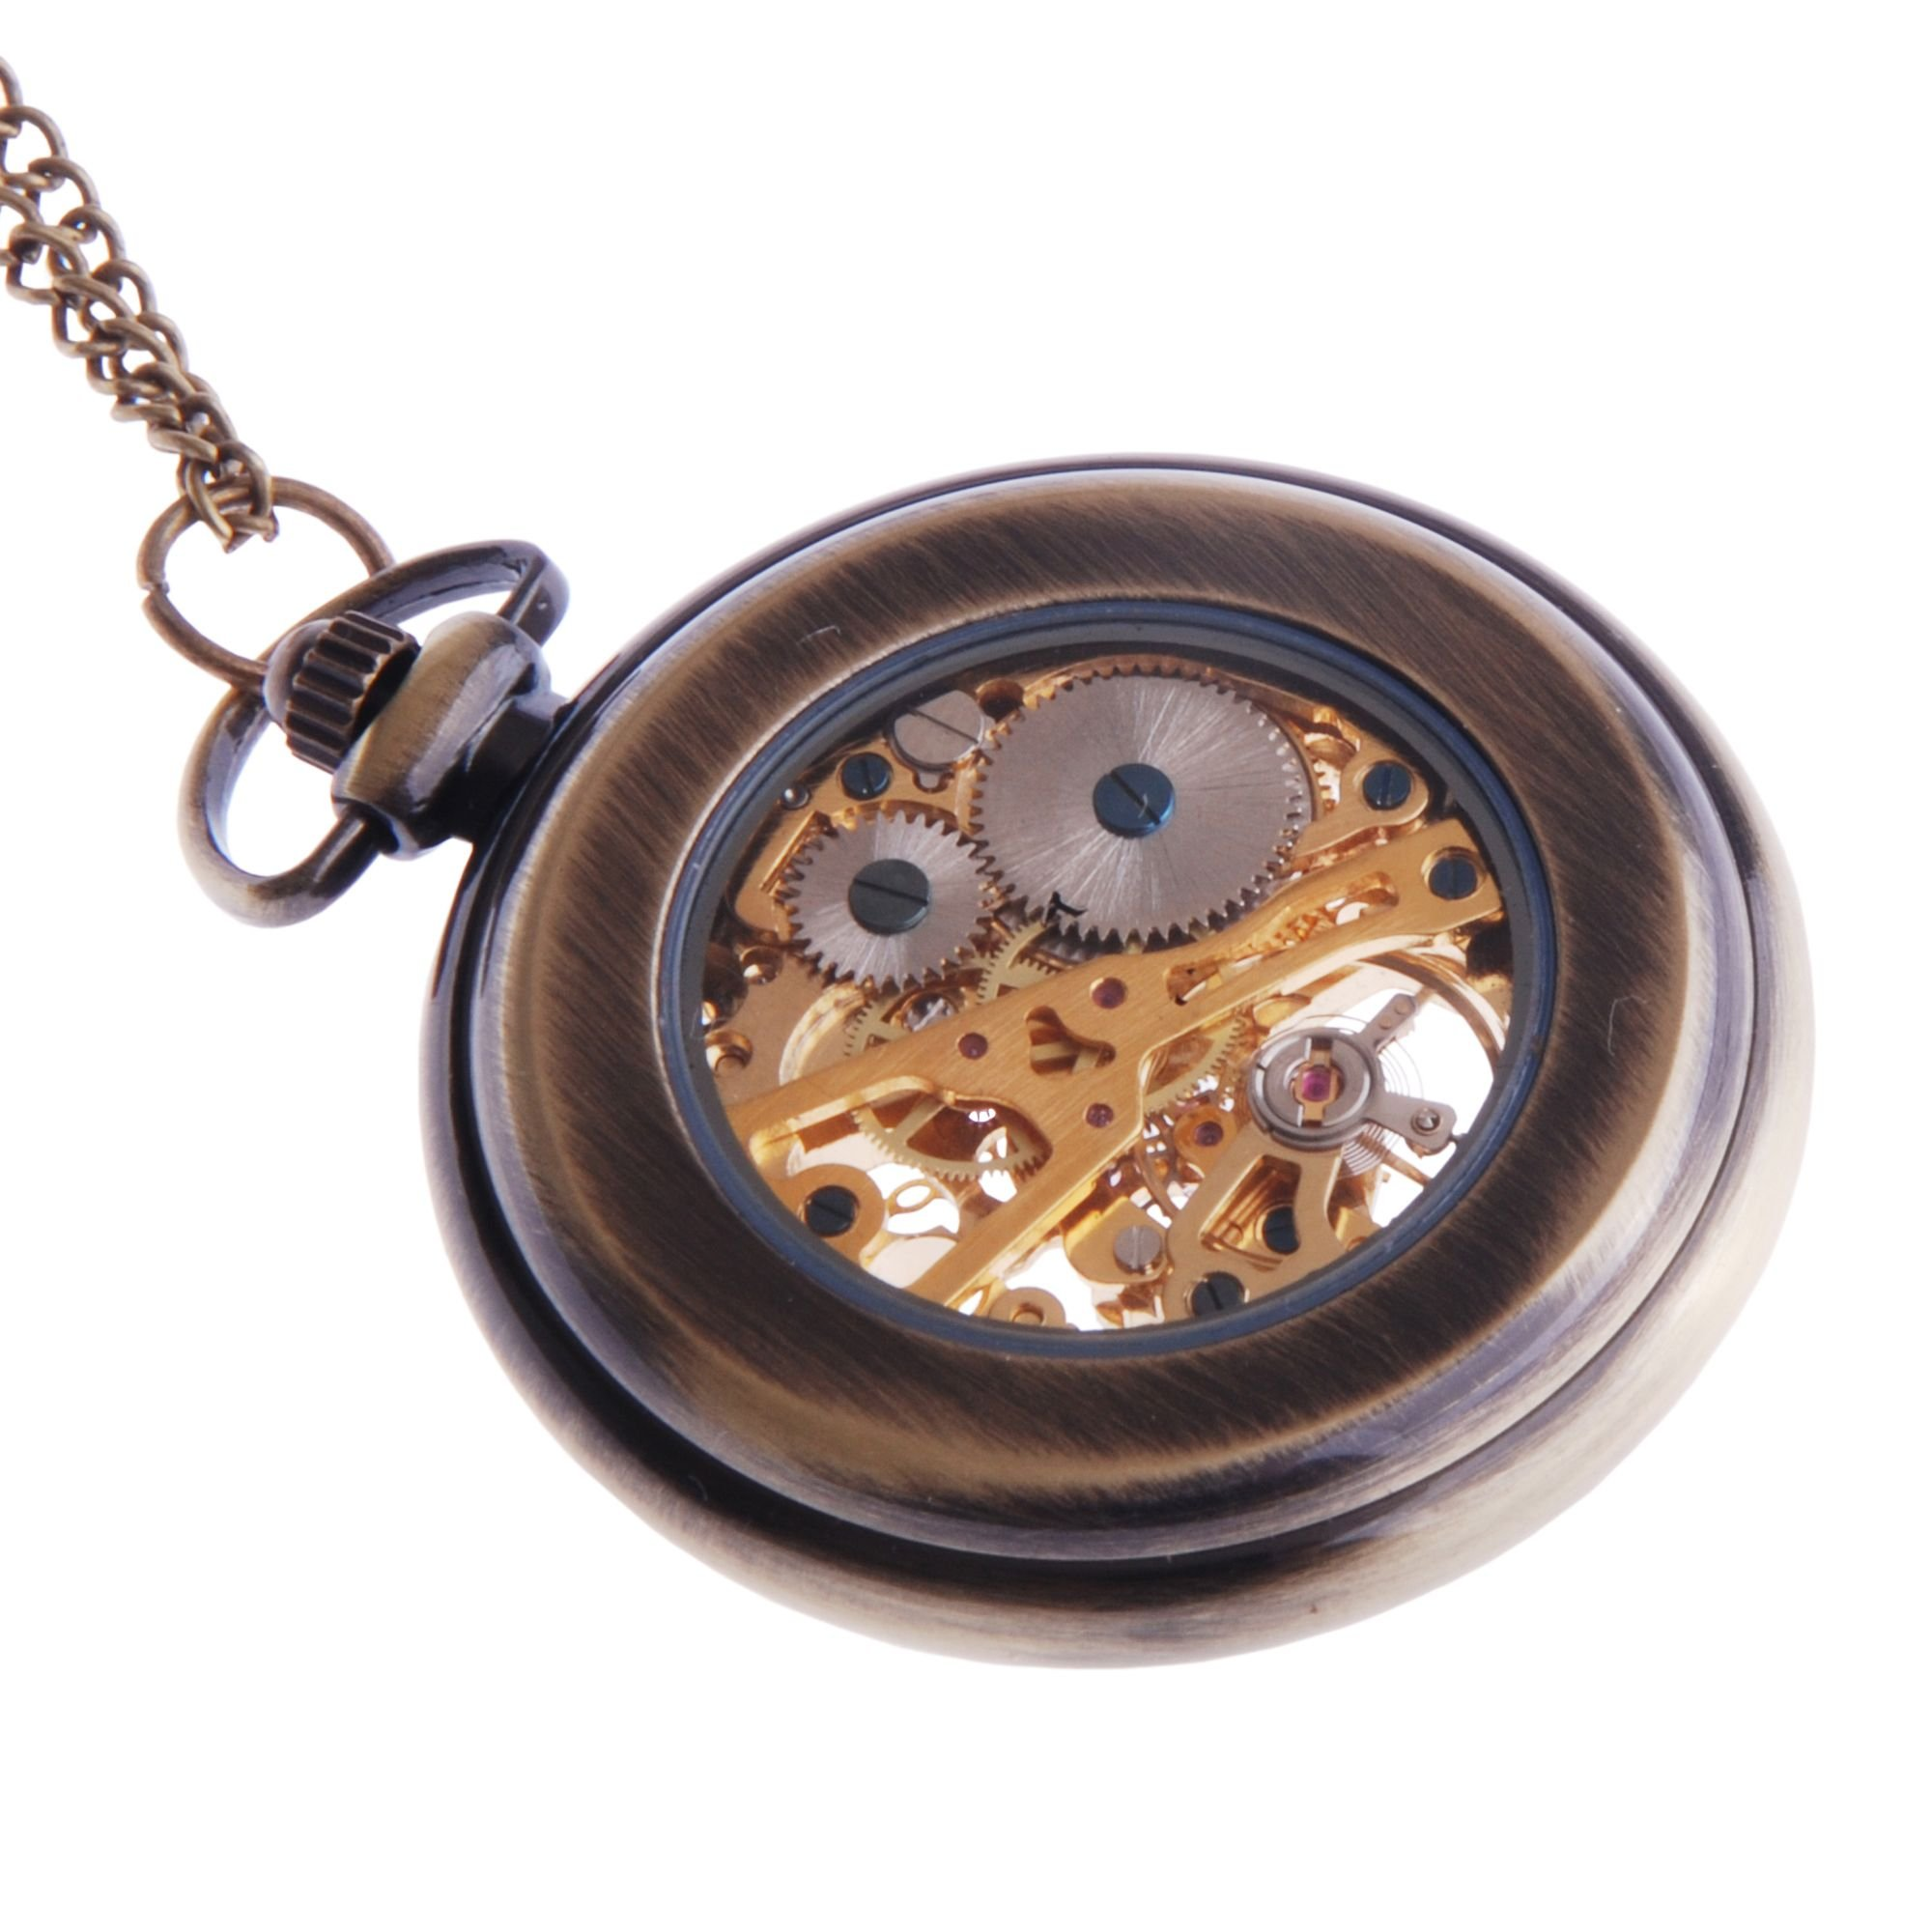 ShoppeWatch Hand Wind Mechanical Skeleton Pocket Watch Open Face Steampunk Style With Chain - PW12 by ShoppeWatch (Image #2)